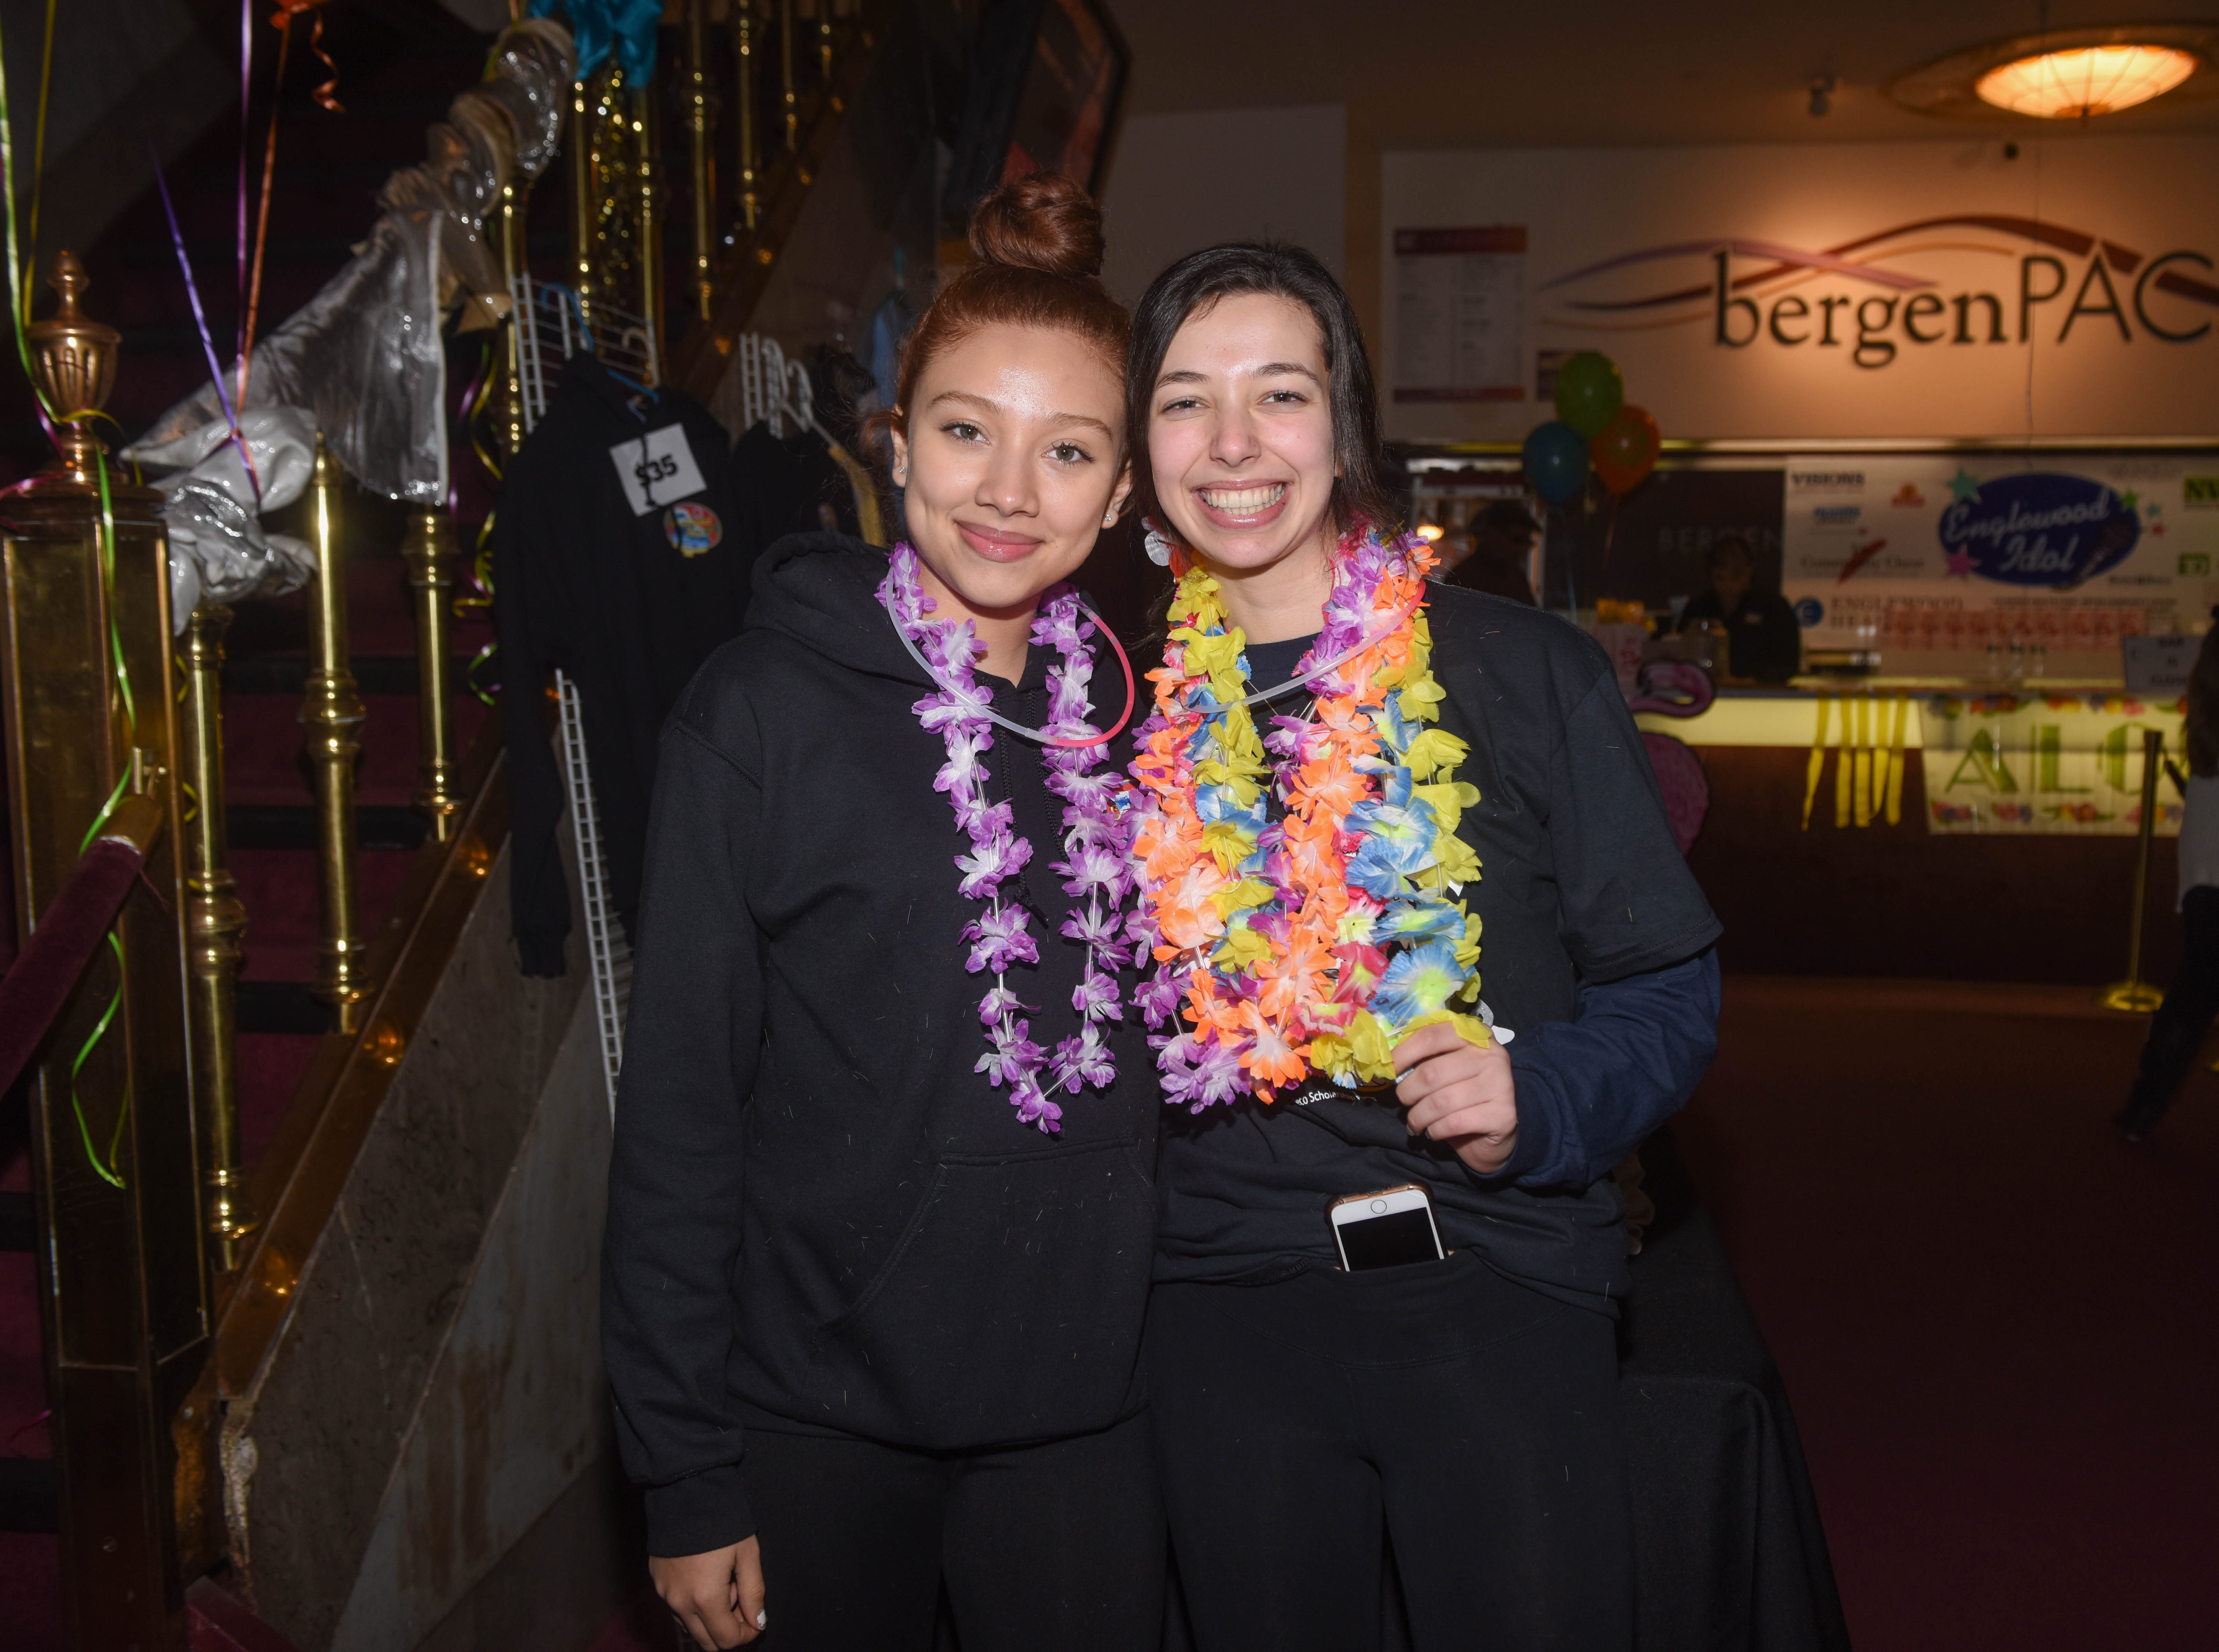 Rebecca Reyes and Emilia Bern. The 2019 Englewood Idol was held at bergenPAC theater. The singing competition is open to any high school student who currently lives or goes to school in Englewood, NJ. This years winner was Genesis Capellan. 01/11/2019